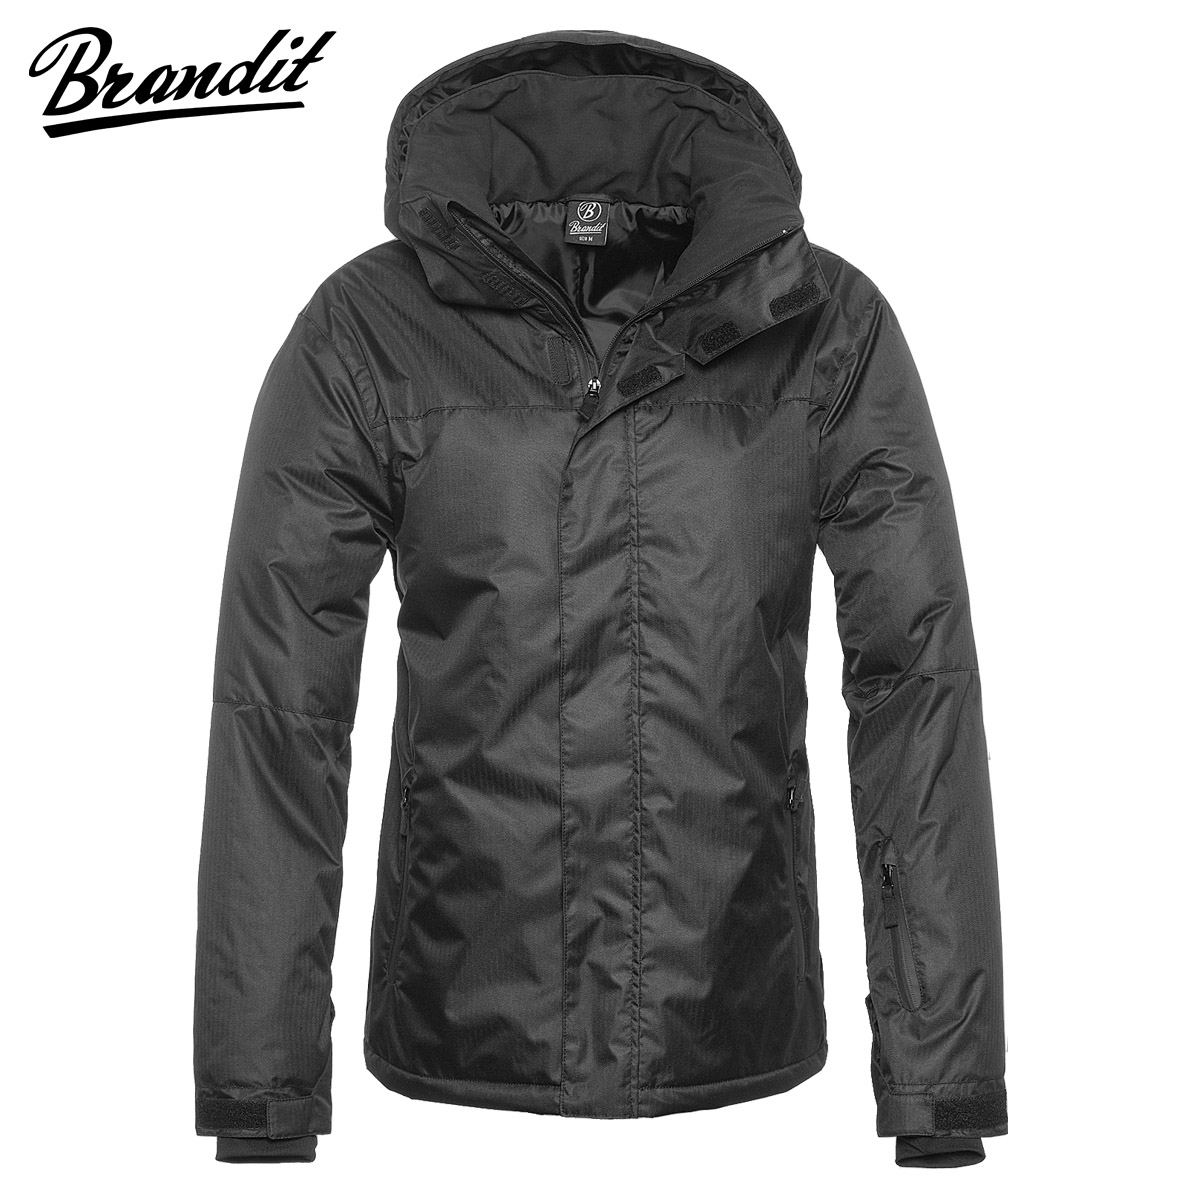 Discover Waterproof Jacket from Brandit